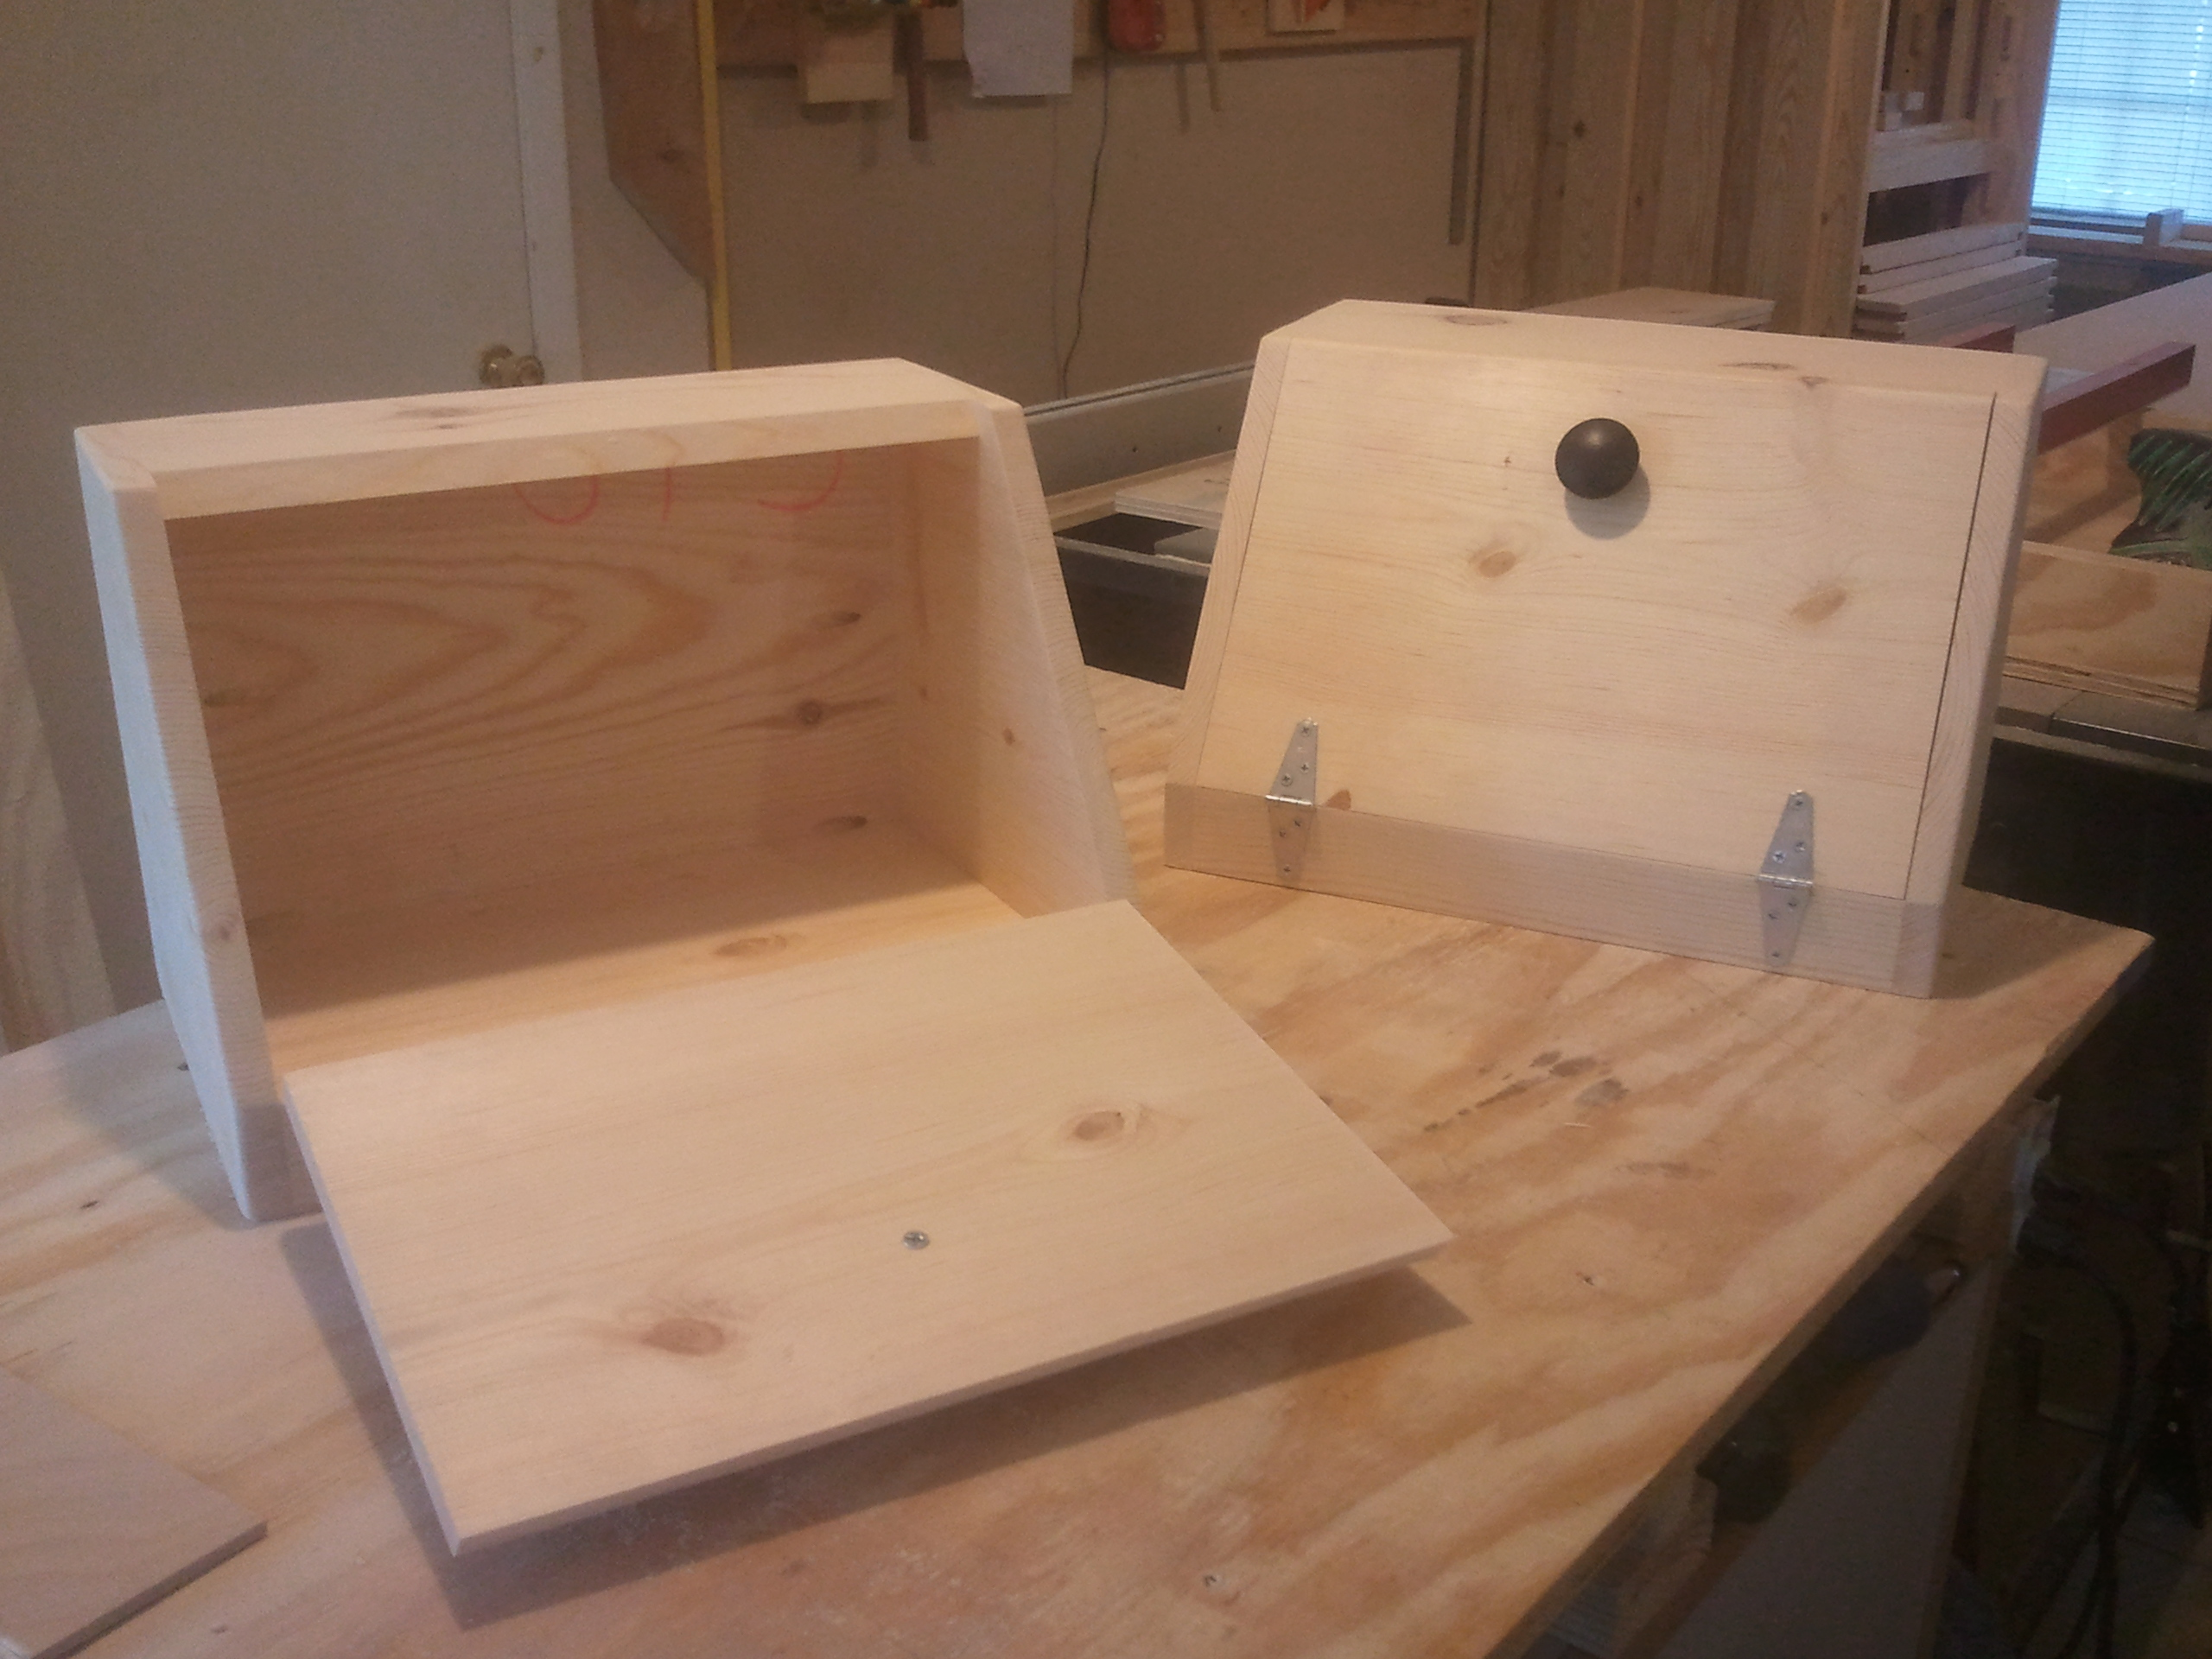 A Pair Of Bread Boxes And Matching Trash Can Jays Custom